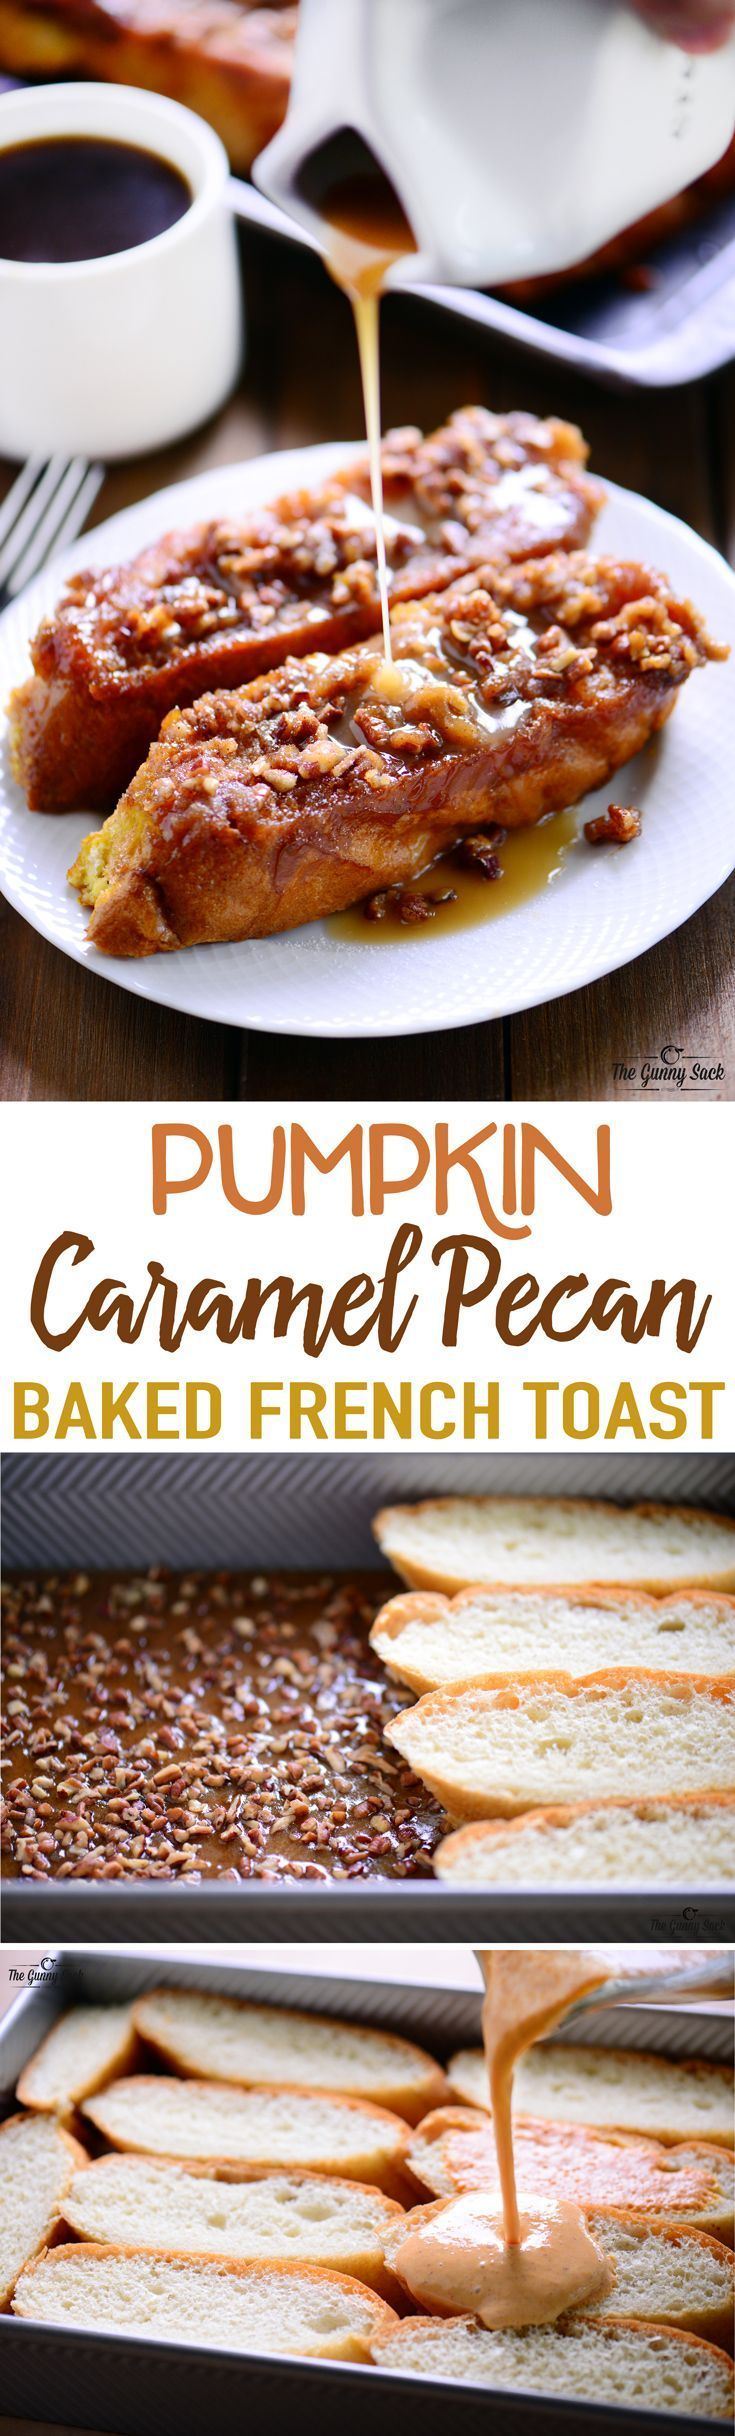 This Pumpkin Caramel Pecan Baked French Toast recipe is irresistibly good and is…